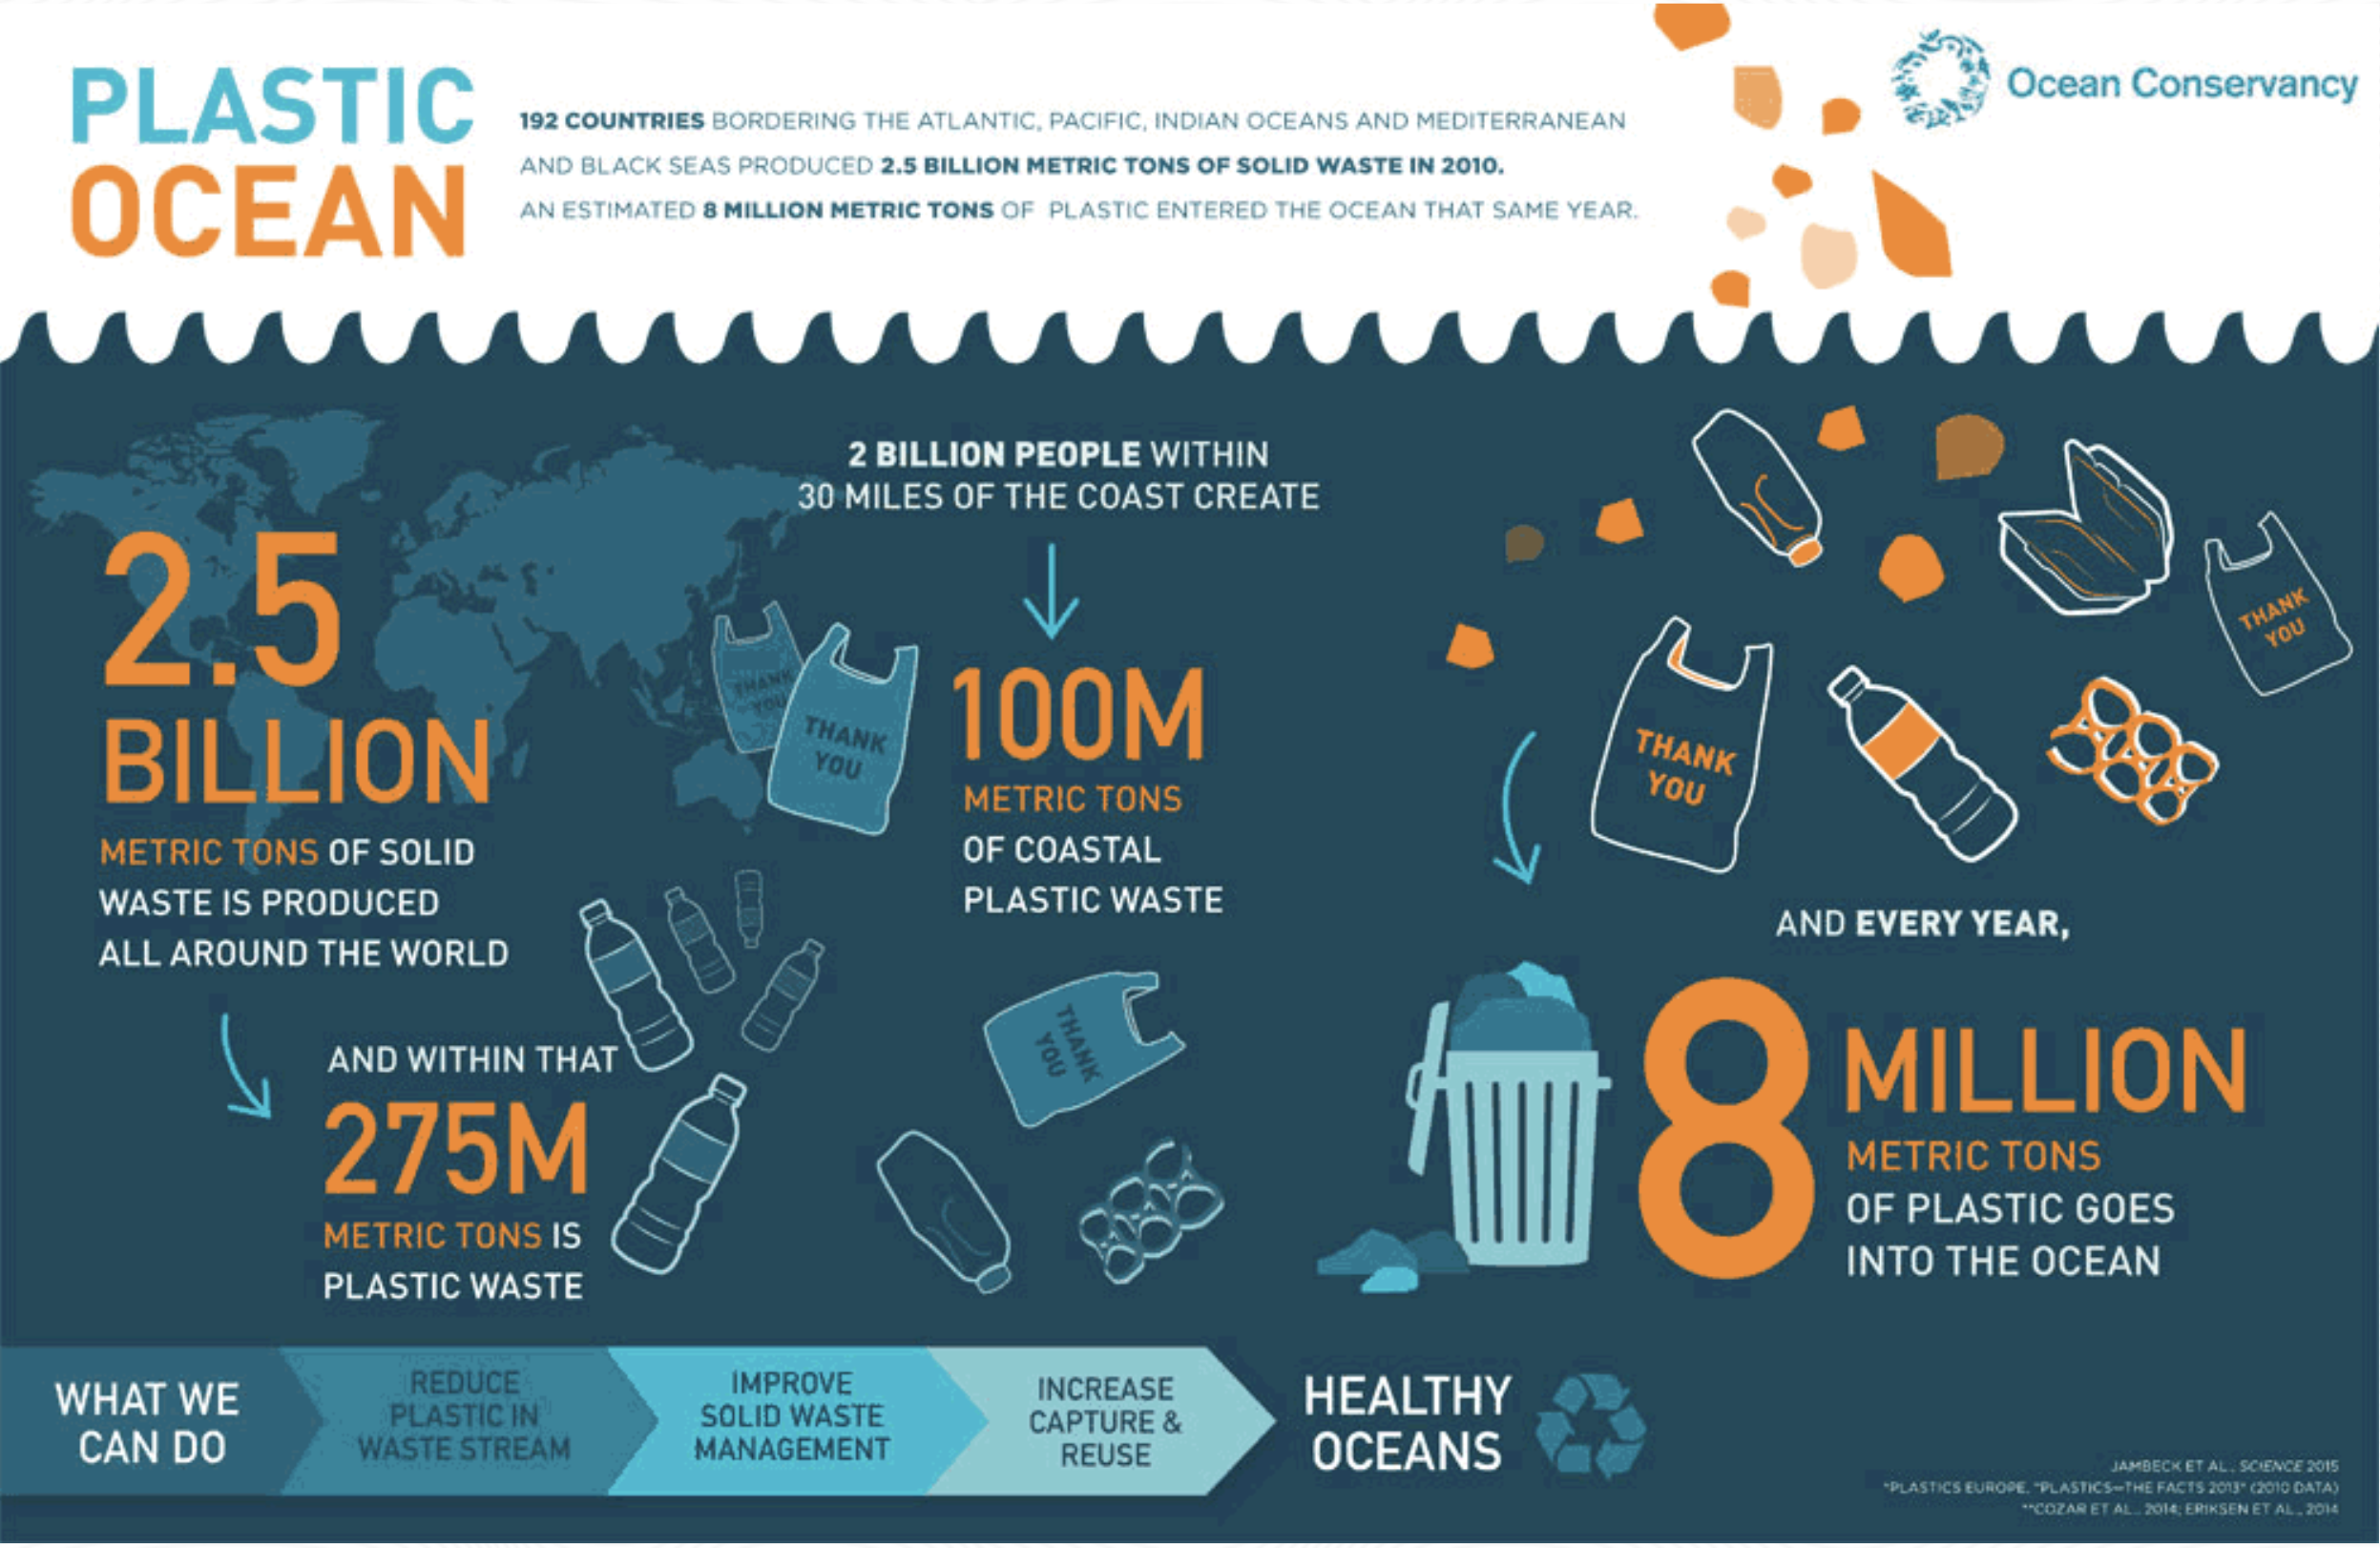 Humans are dumping 8 million tons of plastic waste into the oceans each year